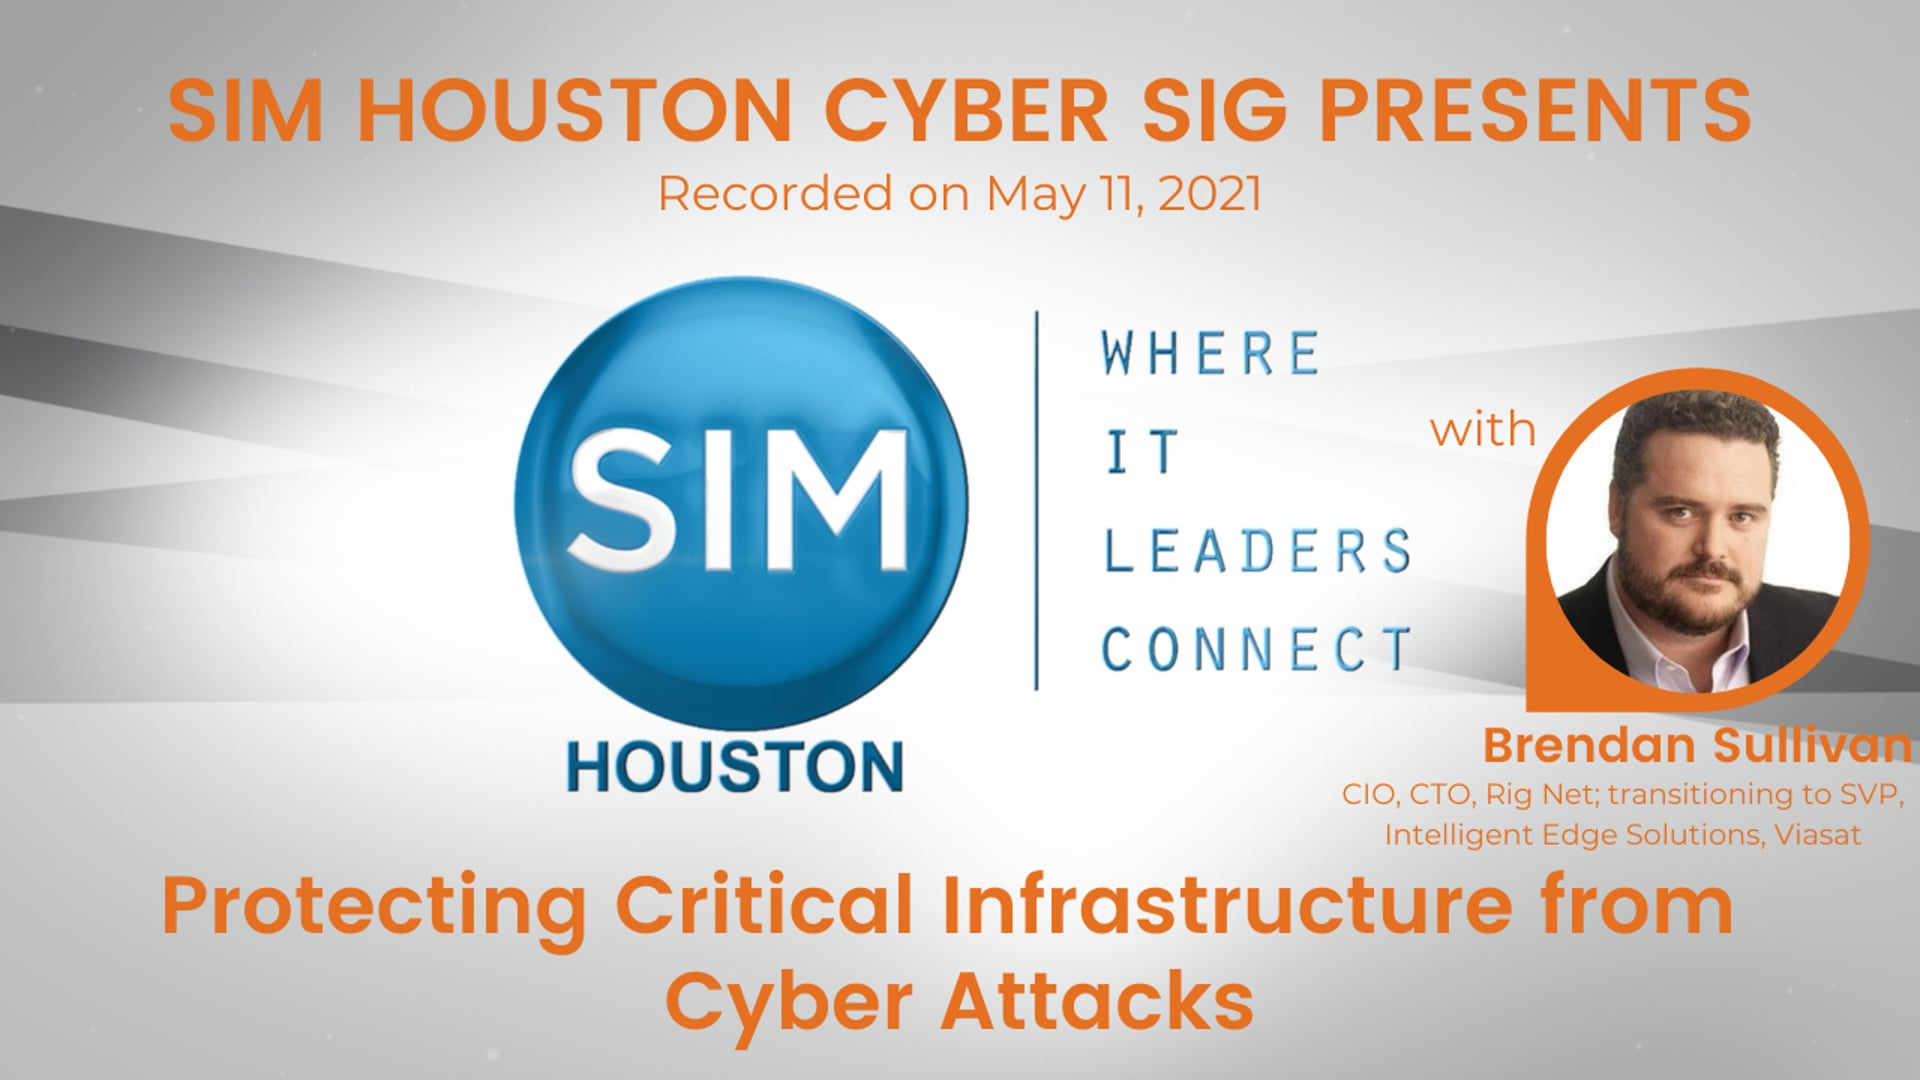 SIM Houston Cyber SIG Presents: Protecting Critical Infrastructure from Cyber Attack